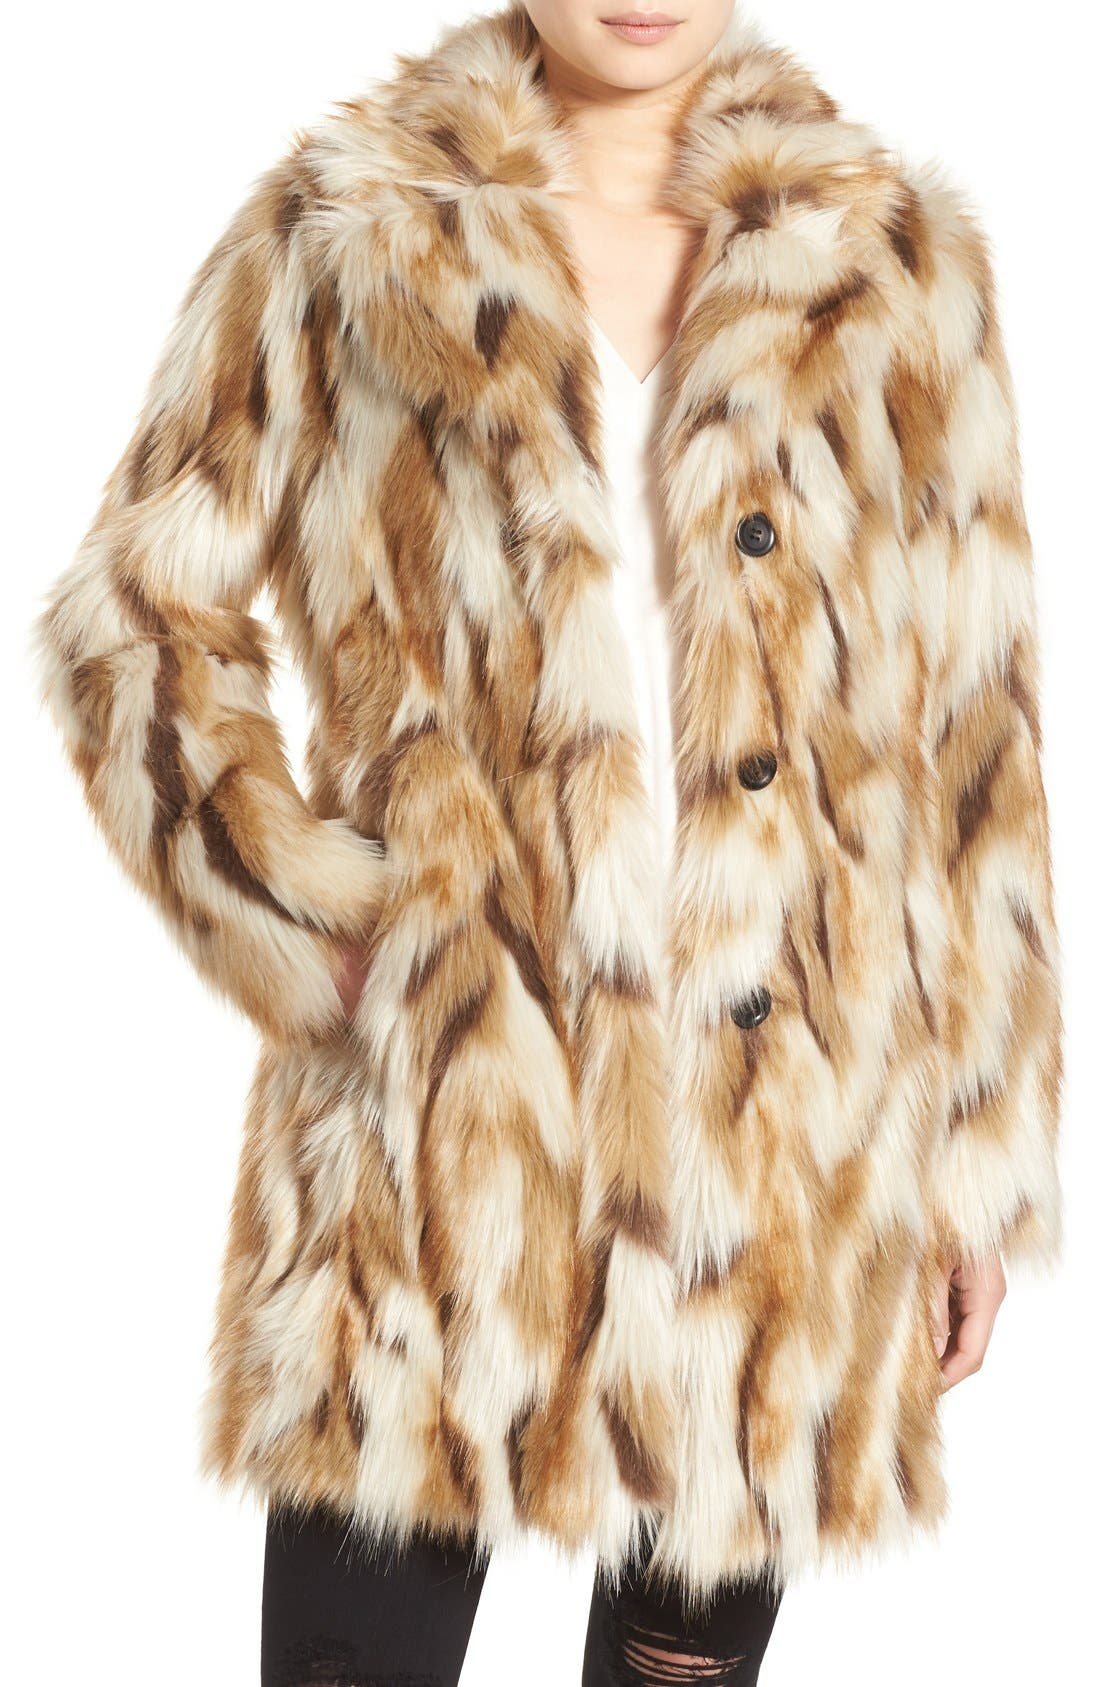 Alternate Image 1 Selected - 7 for All Mankind Faux Fur Coat